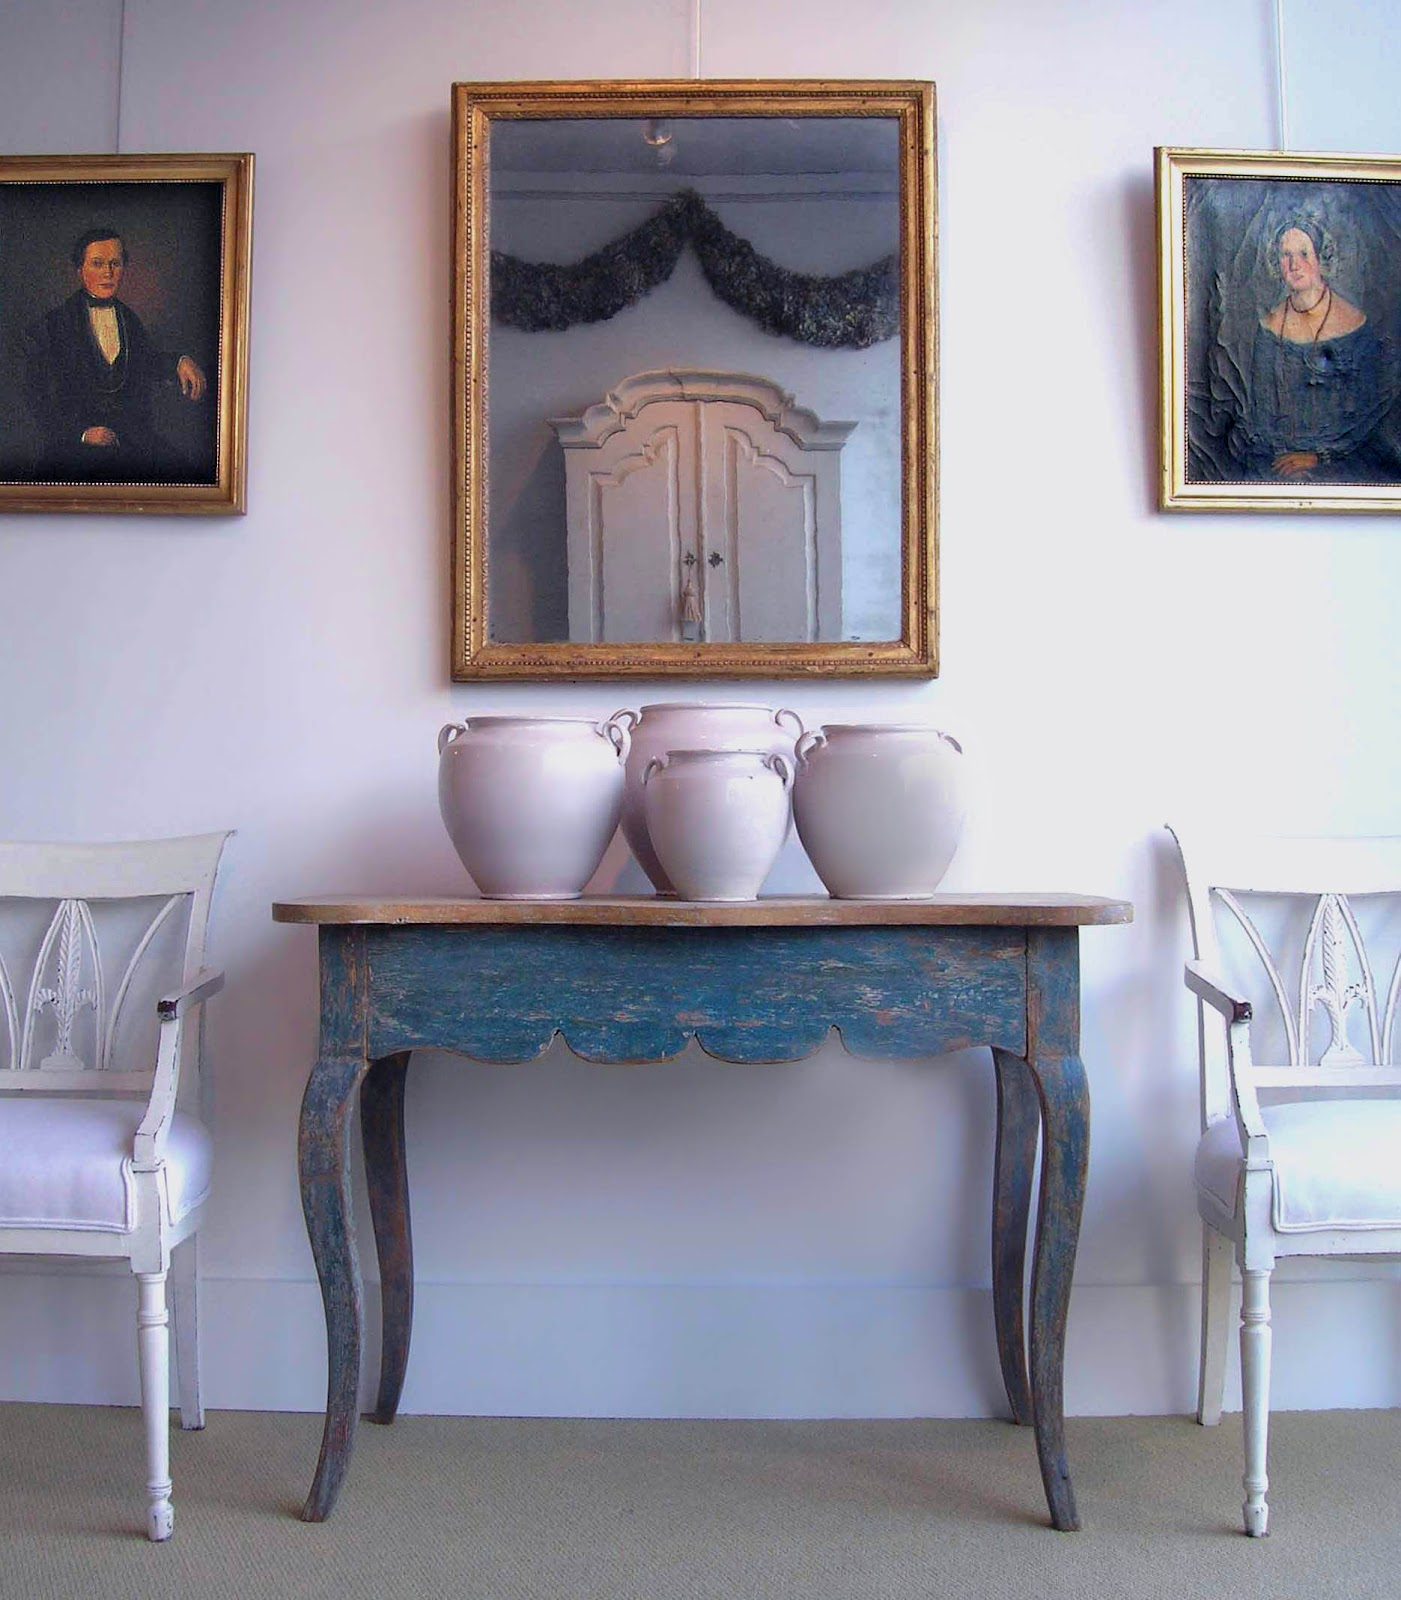 Group of French white pots with Swedish antique furniture. - Tone On Tone: White Ironstone China